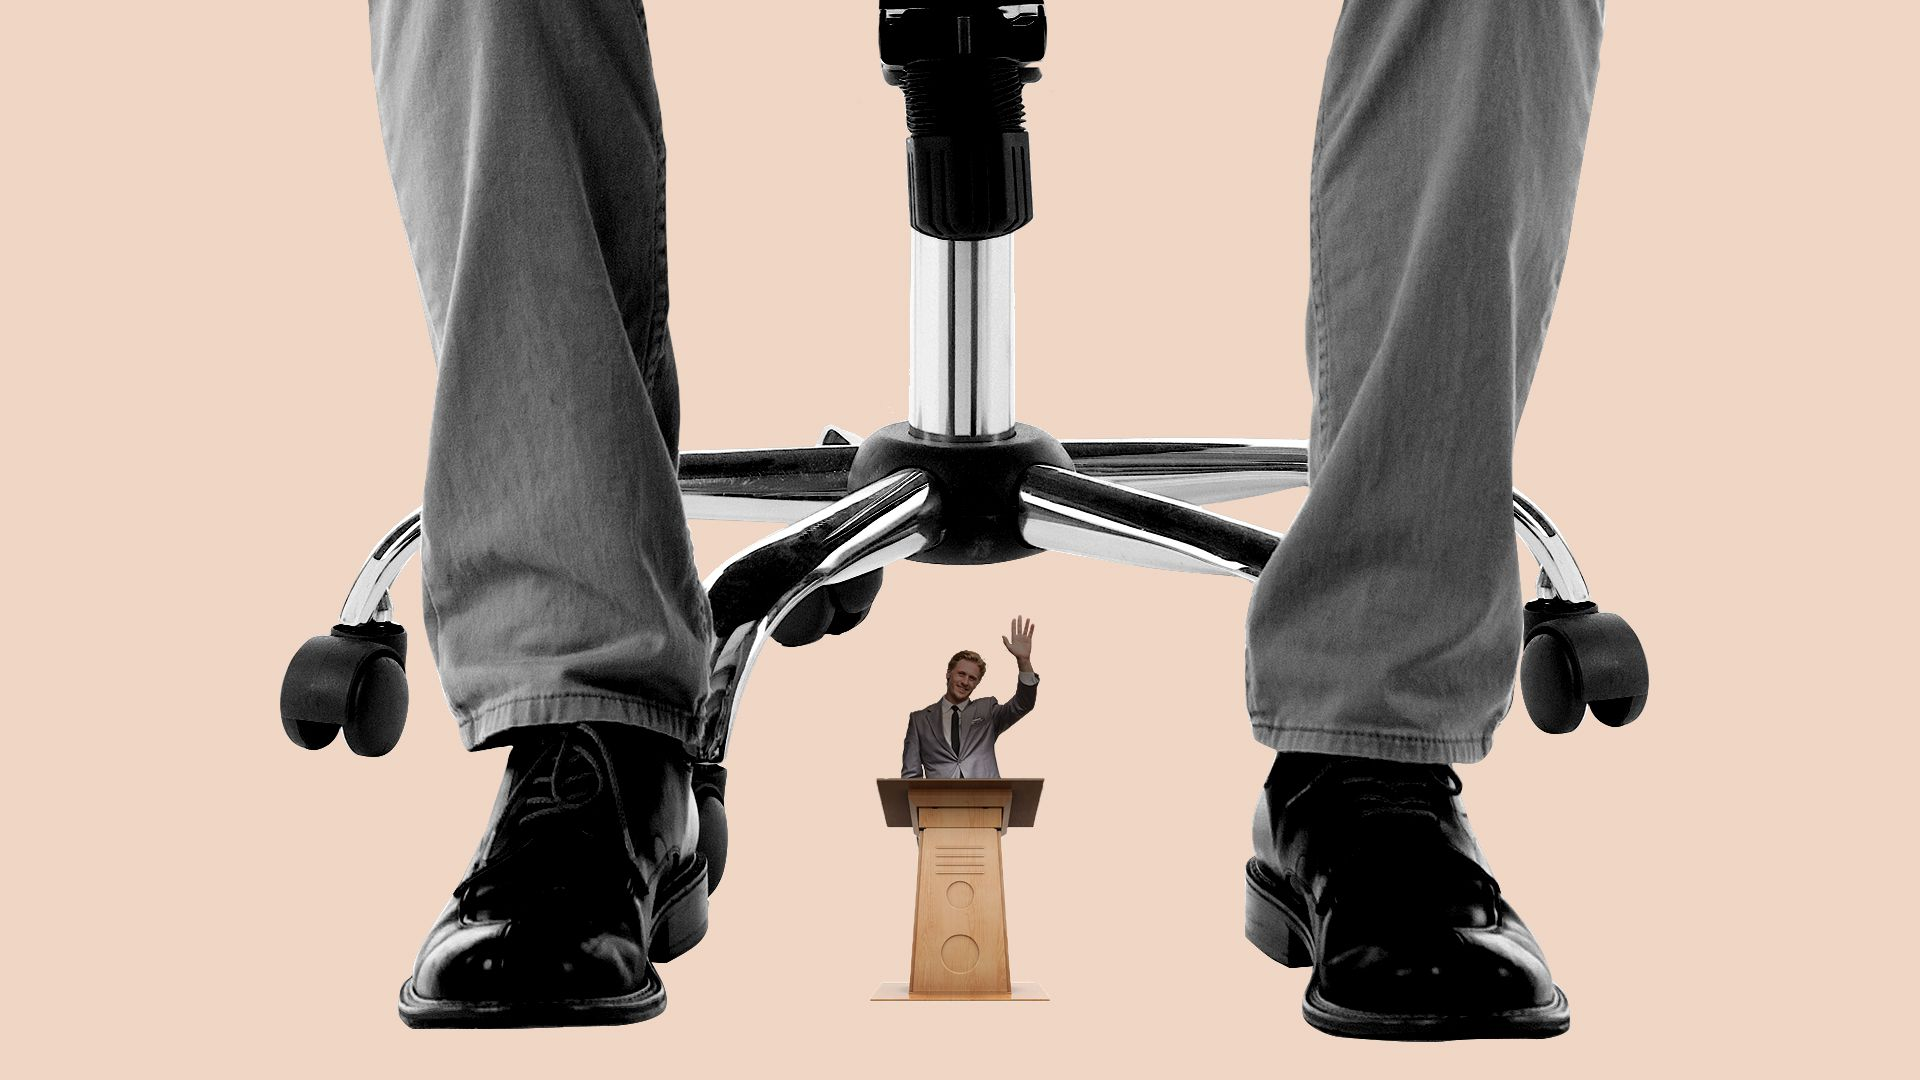 Illustration of a politician giving a speech at a podium, with a giant CEO sitting in an office chair casting a shadow from above.